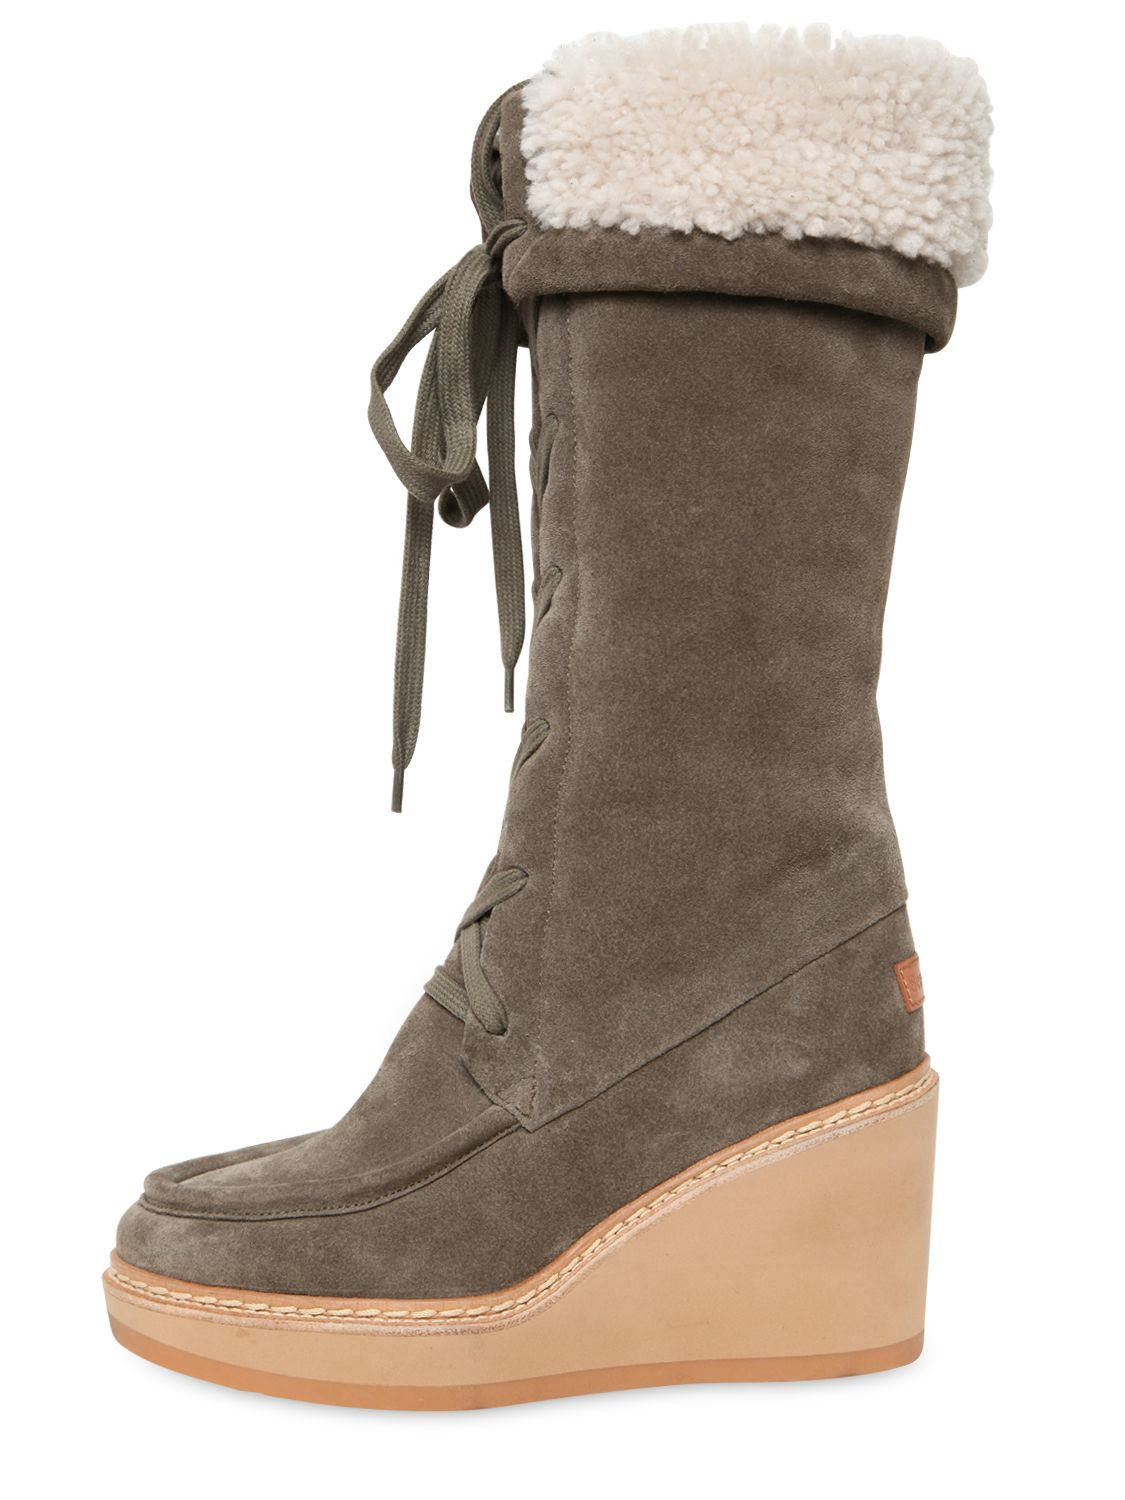 See By Chlo 233 80mm Suede Amp Shearling Wedge Boots In Brown